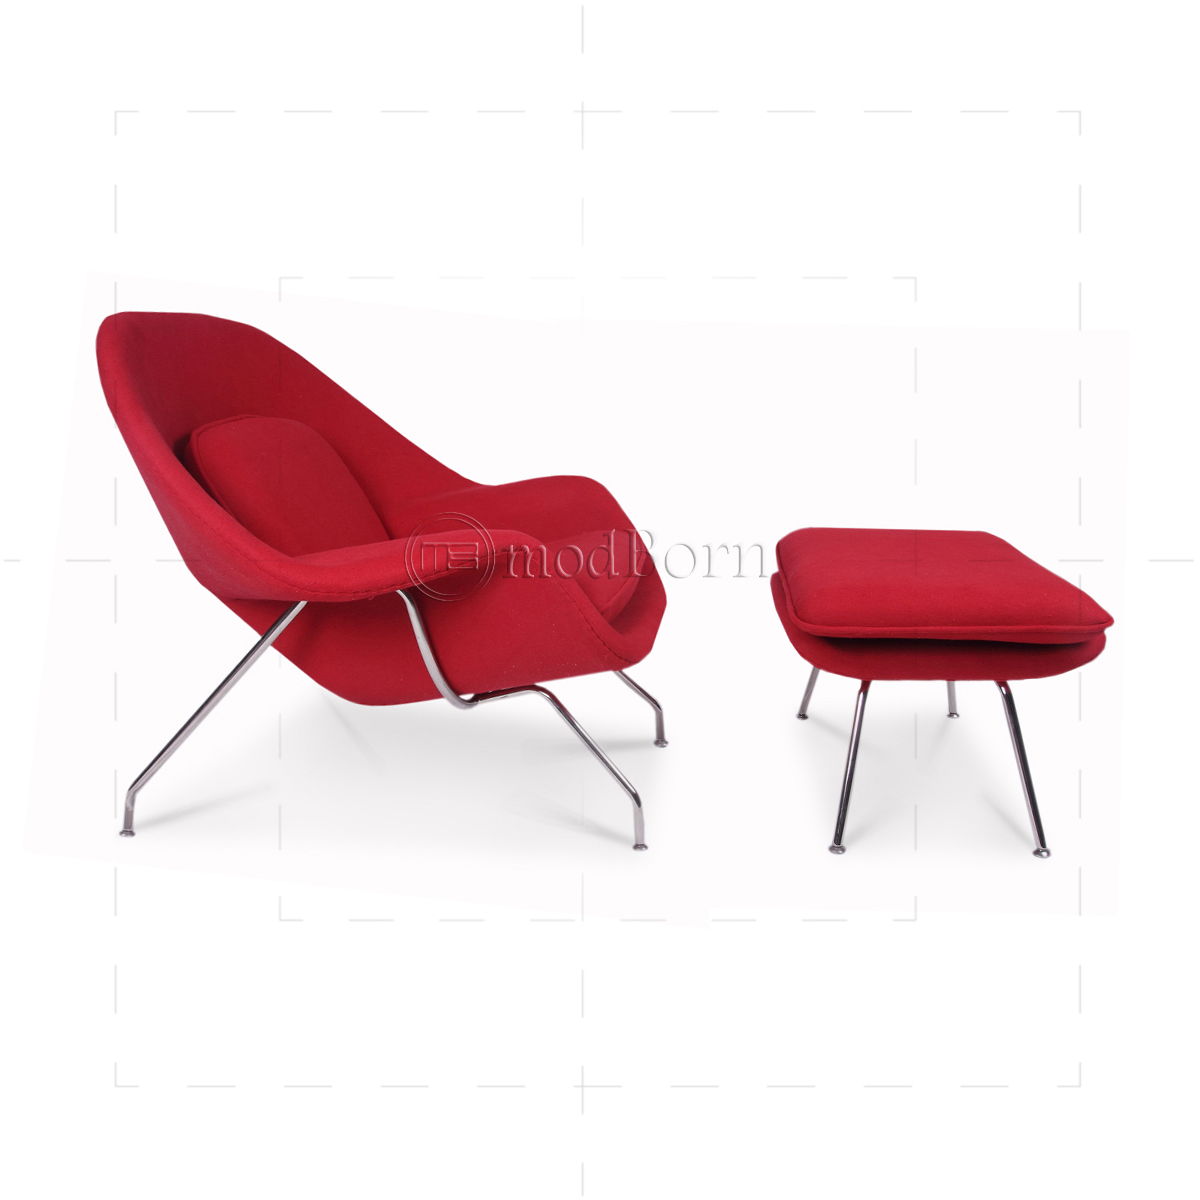 Eero saarinen style womb chair red cashmere wool replica - Saarinen womb chair reproduction ...